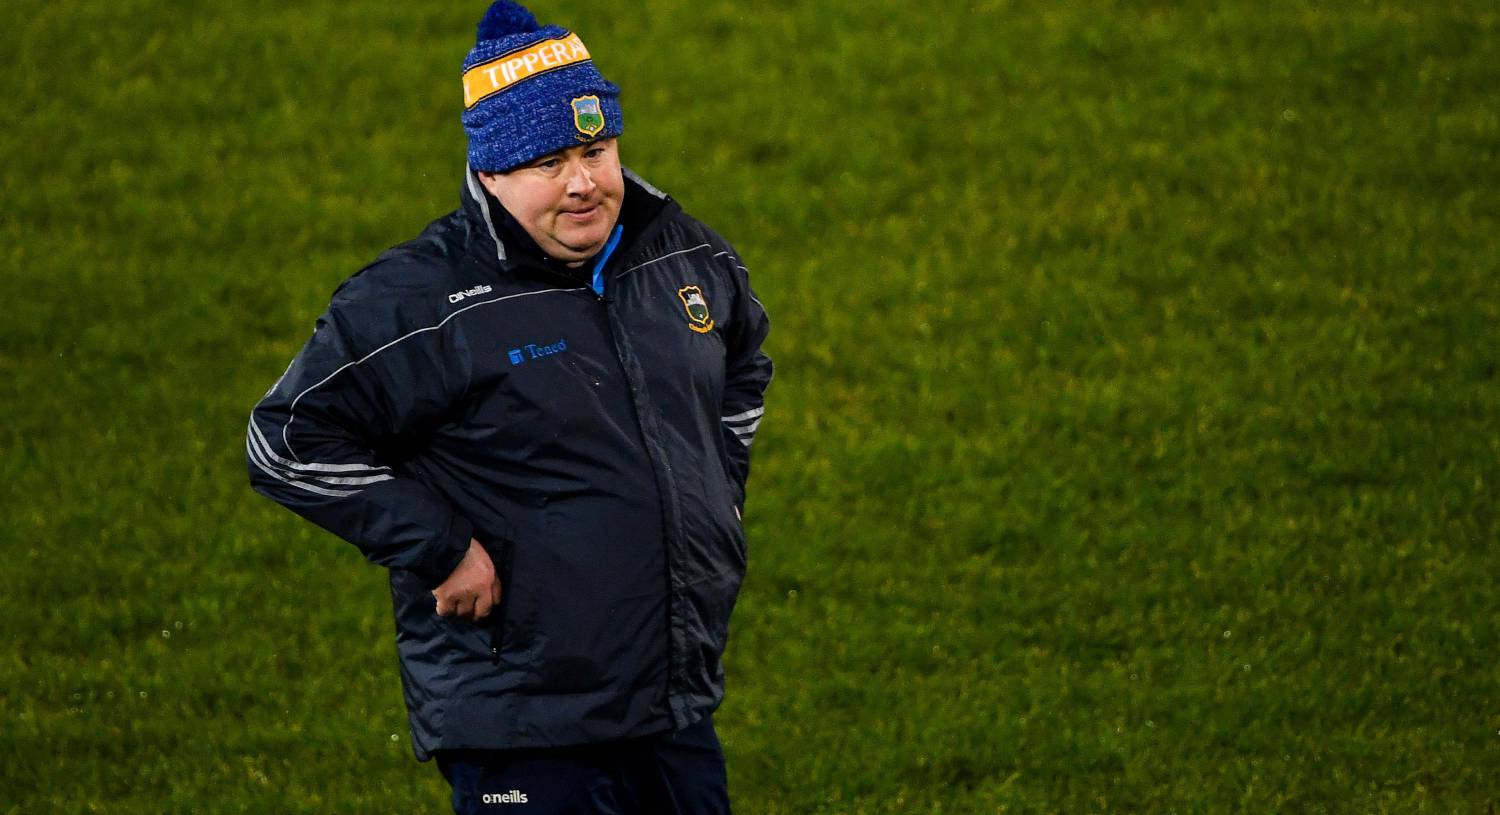 Tipperary boss David Power 'flabbergasted' by GAA's stance on inter-county training